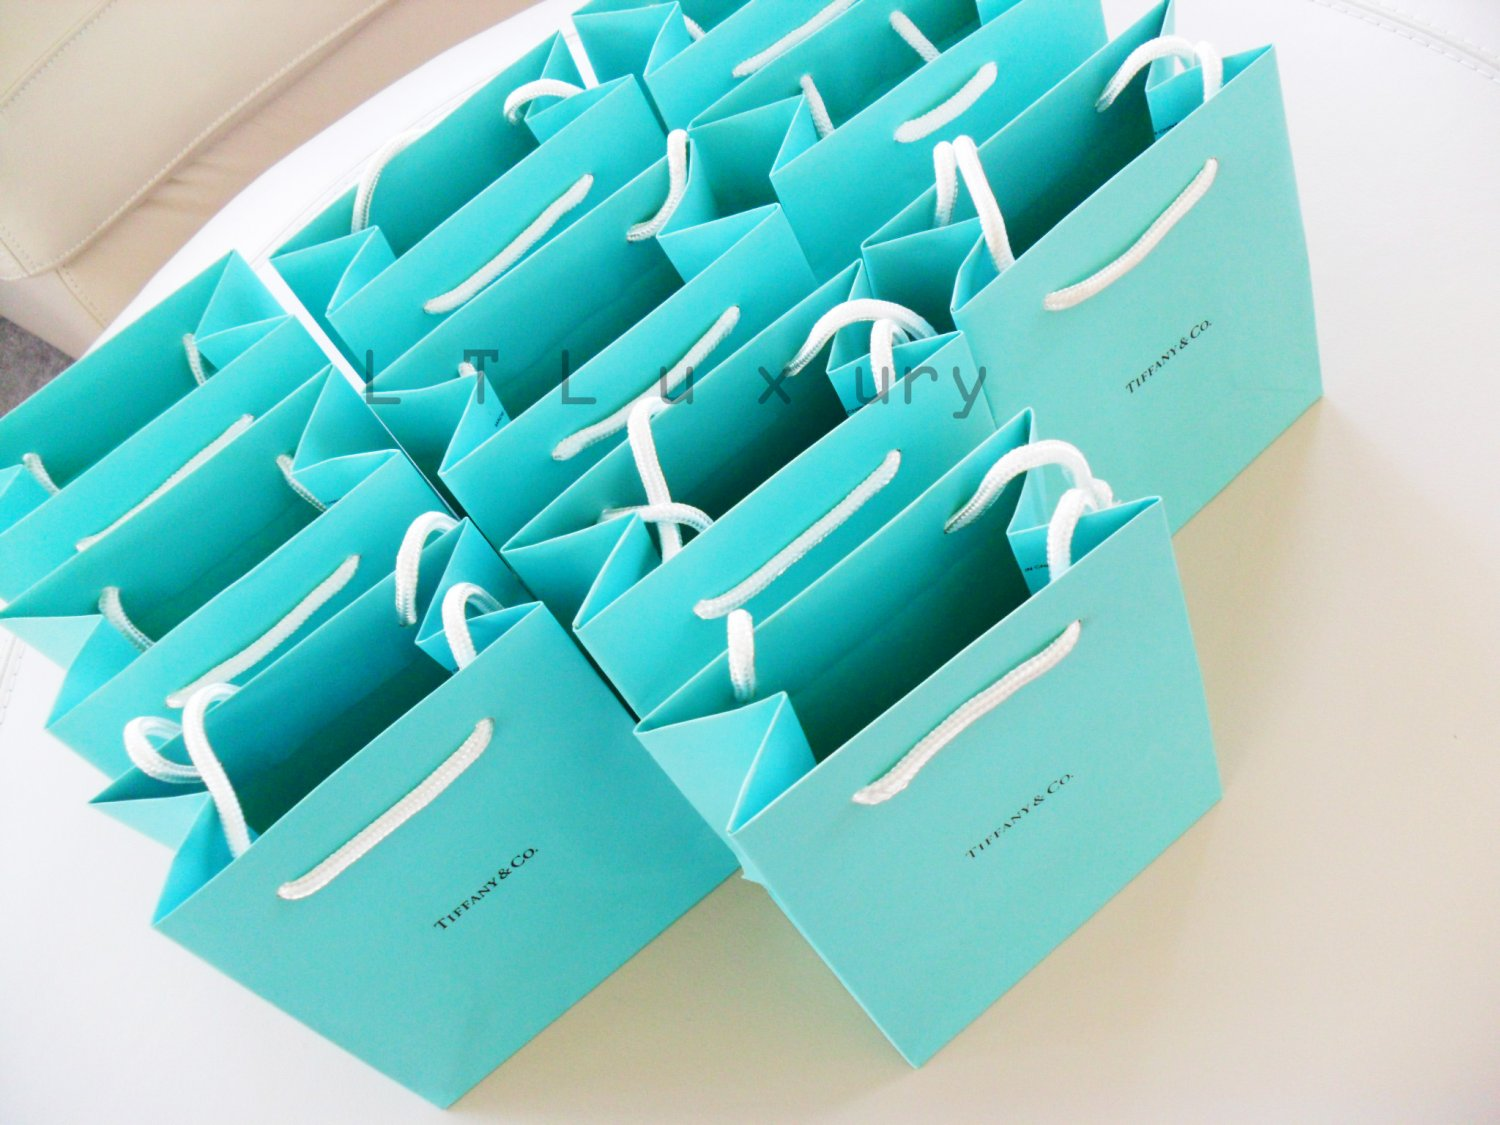 84aaec16ed9 ONE (1) Tiffany & Co. MEDIUM gift bag BRAND NEW Perfect Gift bag for Tiffany  themed parties!